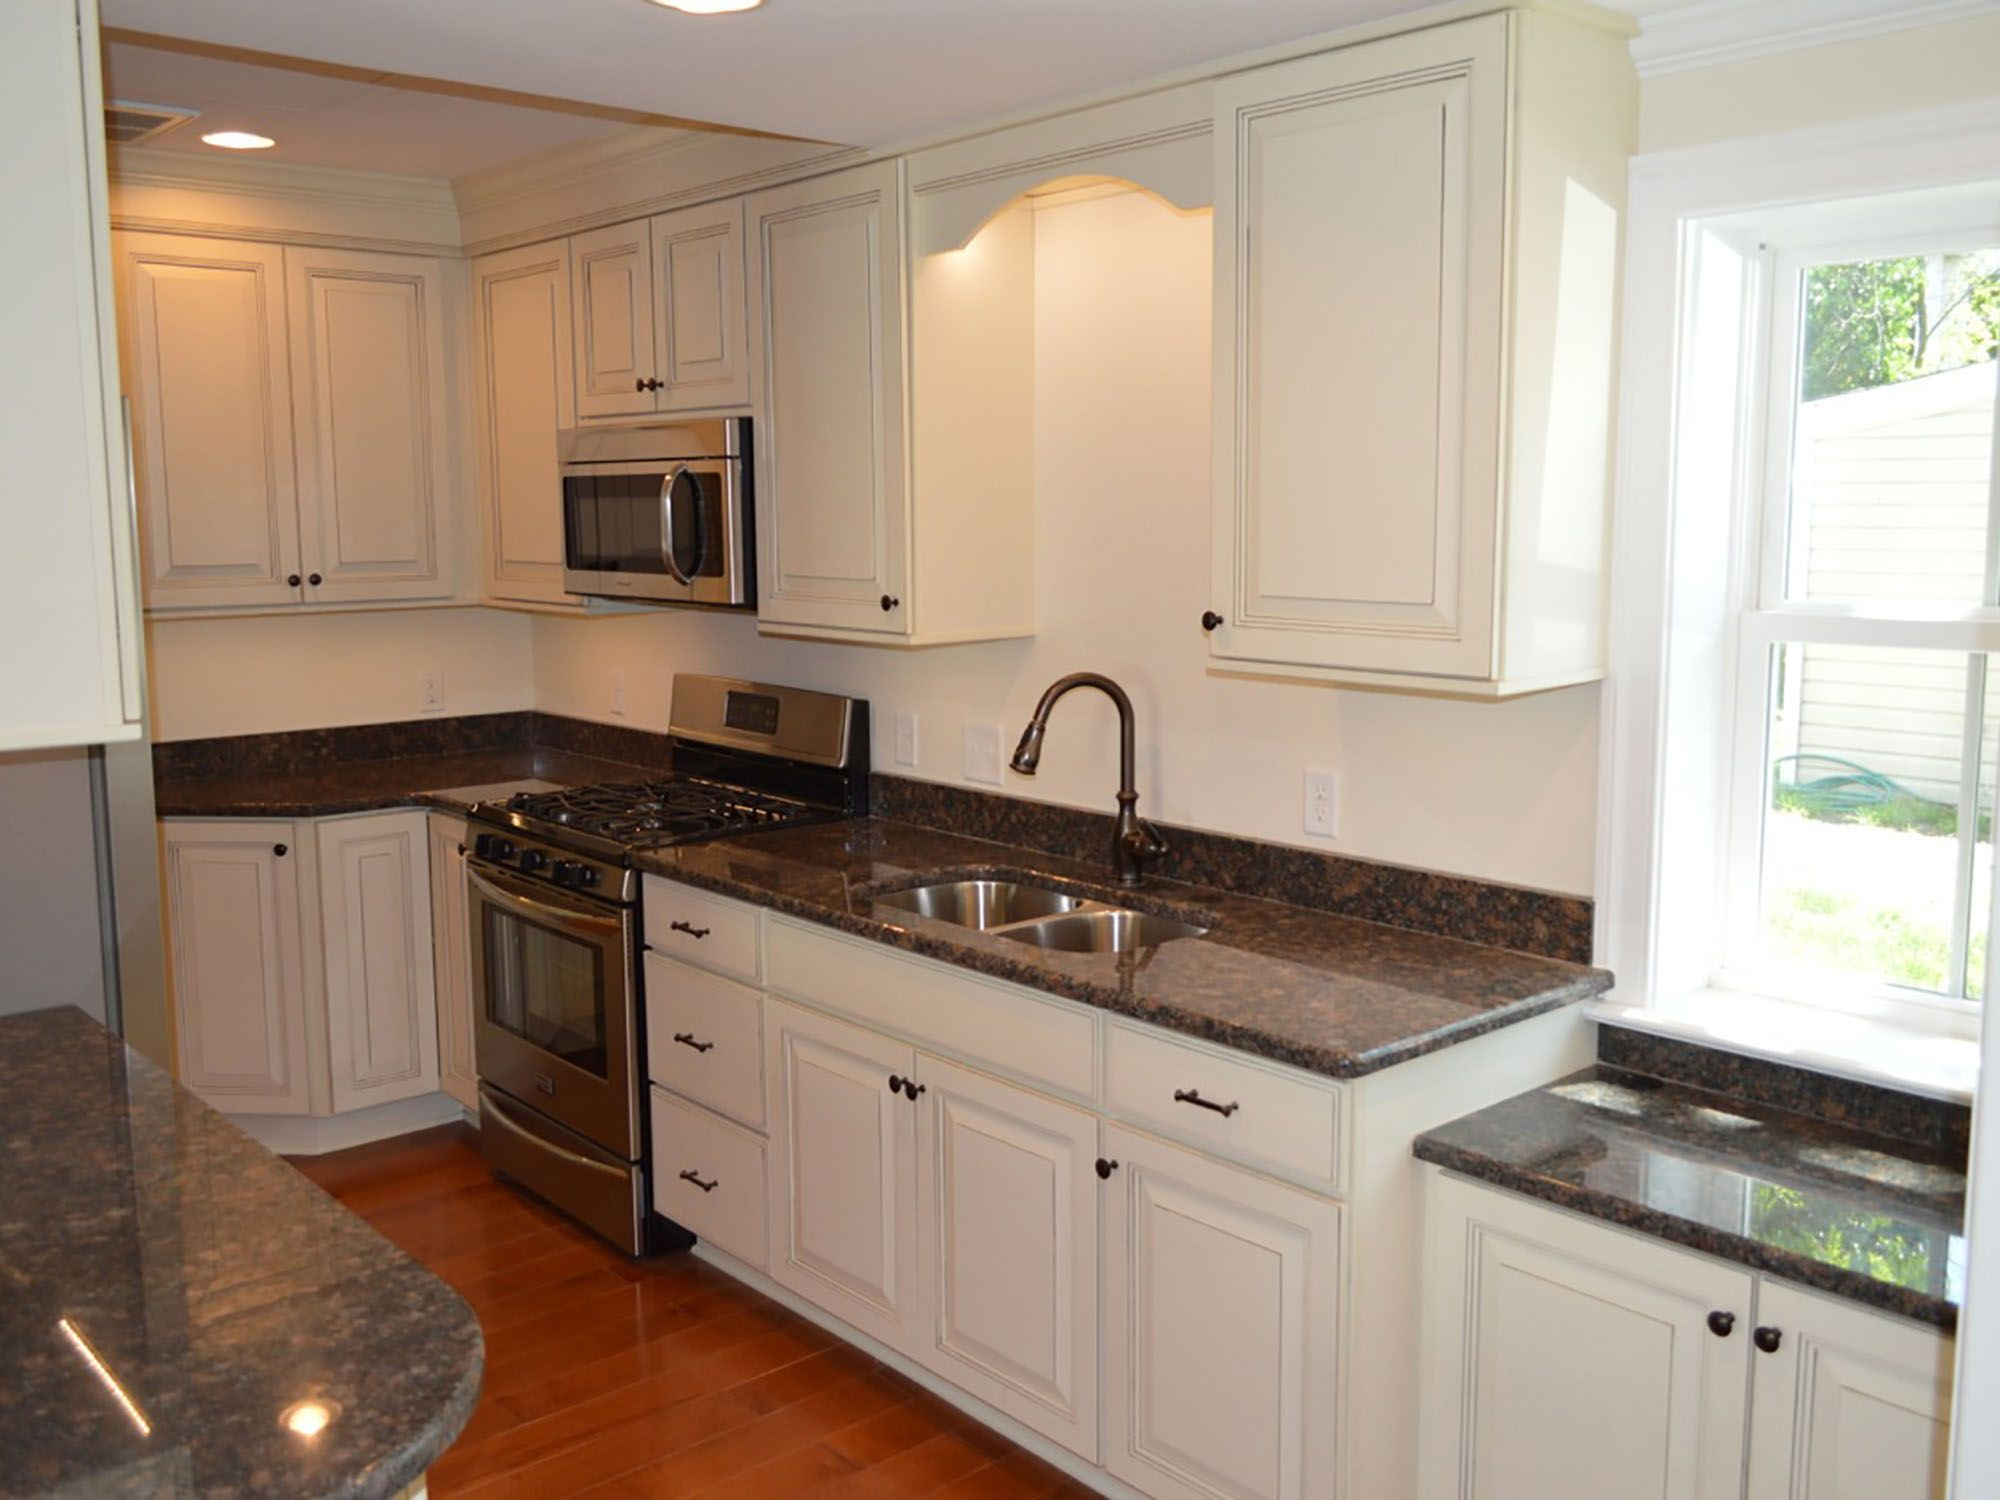 Picture Of Woman And Large Spotted Dog In Kitchen Woman Working At Double Wide Center Island Built Of Gray Cabin Kitchen Design Kitchen Cabinet Design Kitchen